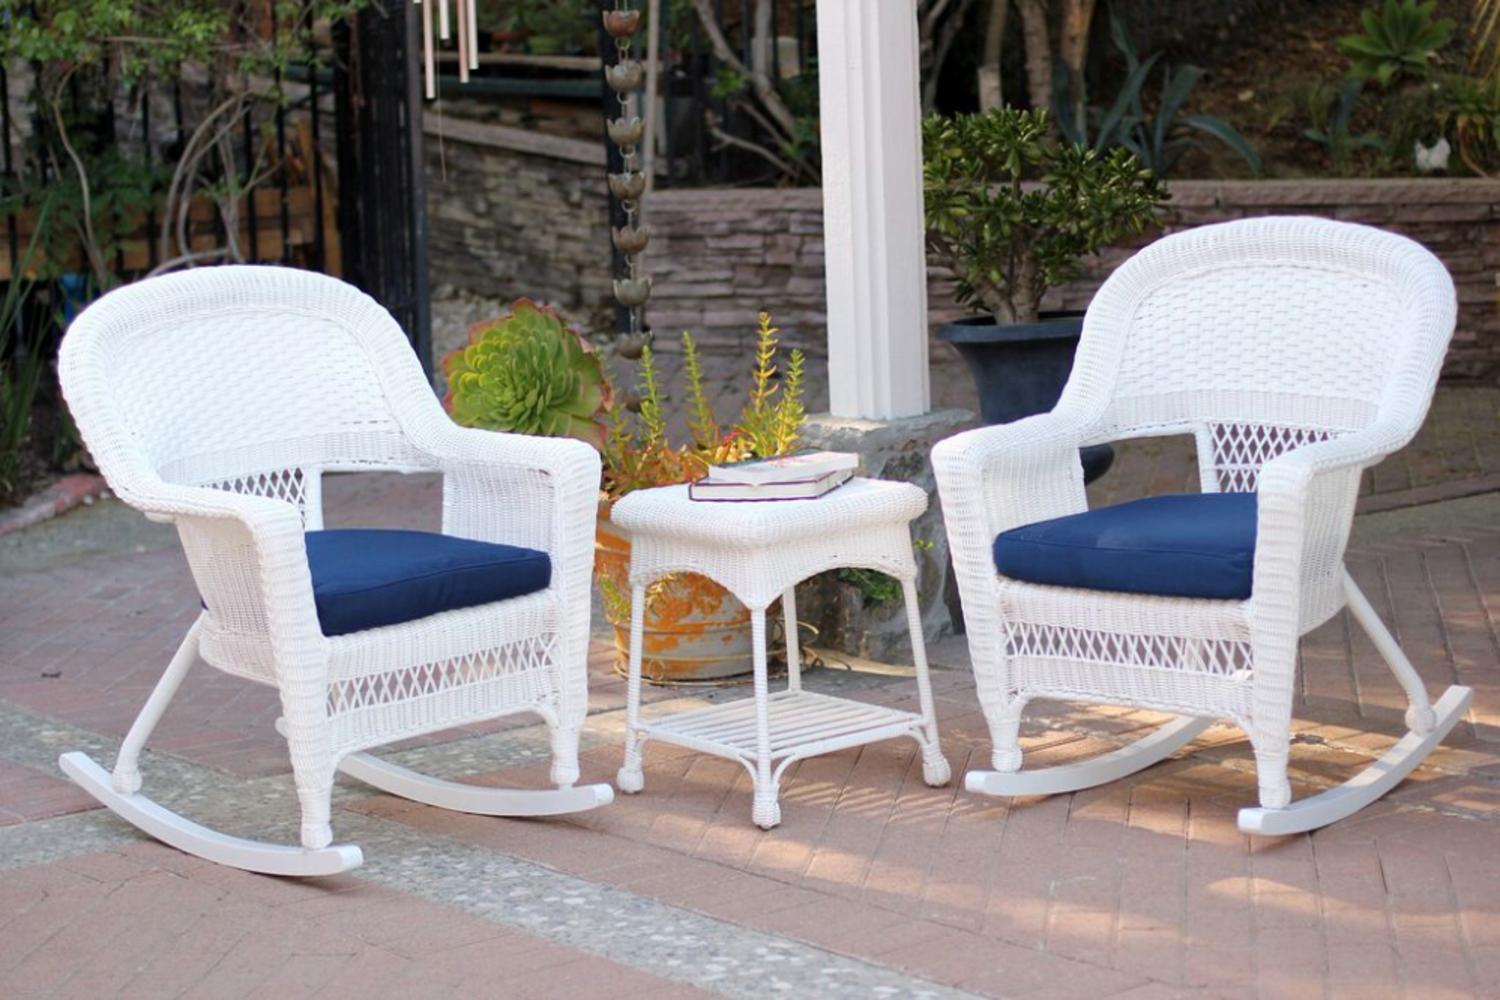 3-Piece Ariel White Resin Wicker Patio Rocker Chairs and Table Furniture Set Blue Cushions by CC Outdoor Living